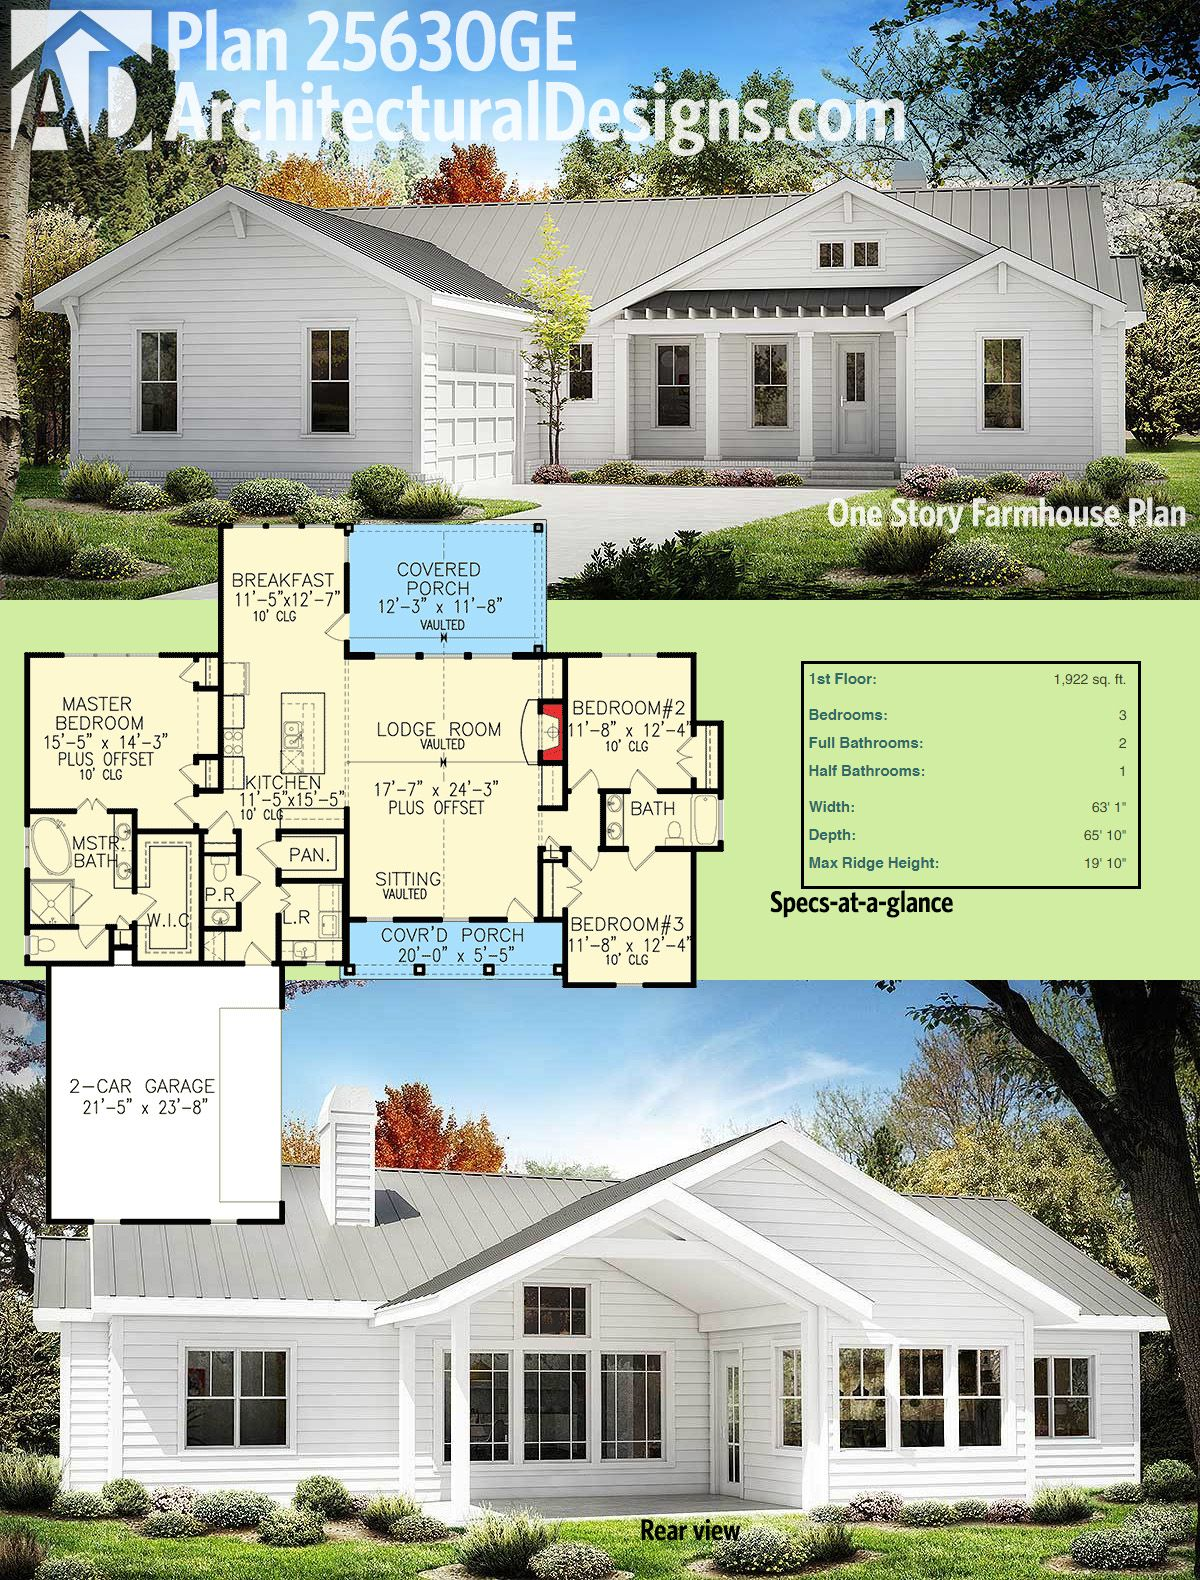 Plan 25630ge one story farmhouse plan farmhouse plans for Farmhouse building plans